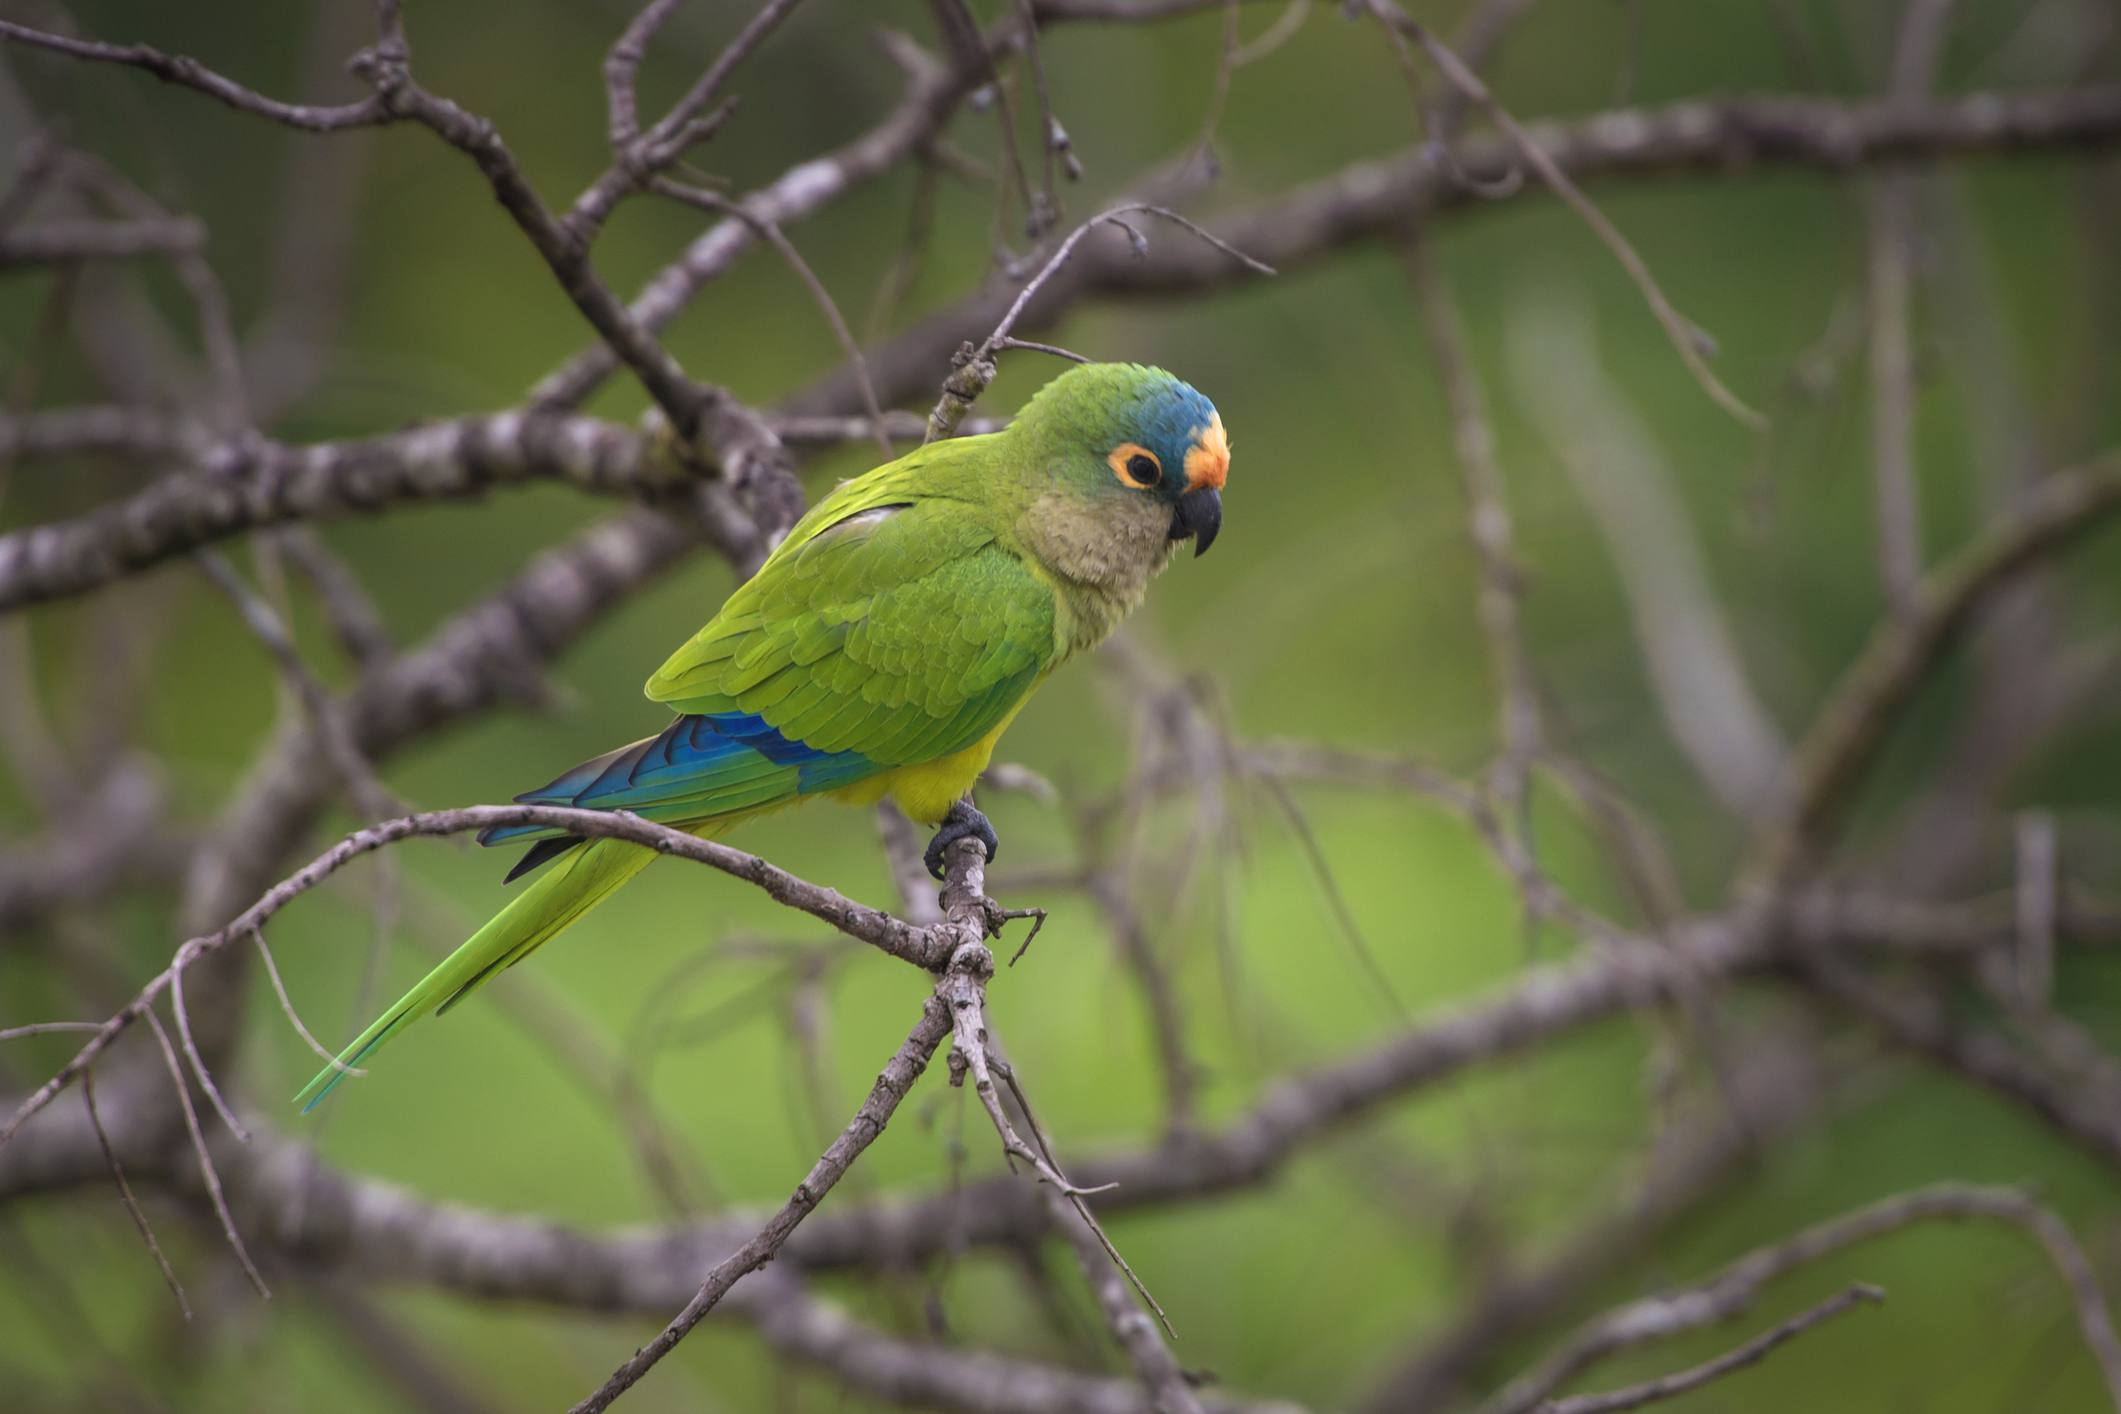 A single Illiger's macaw standing on a branch.